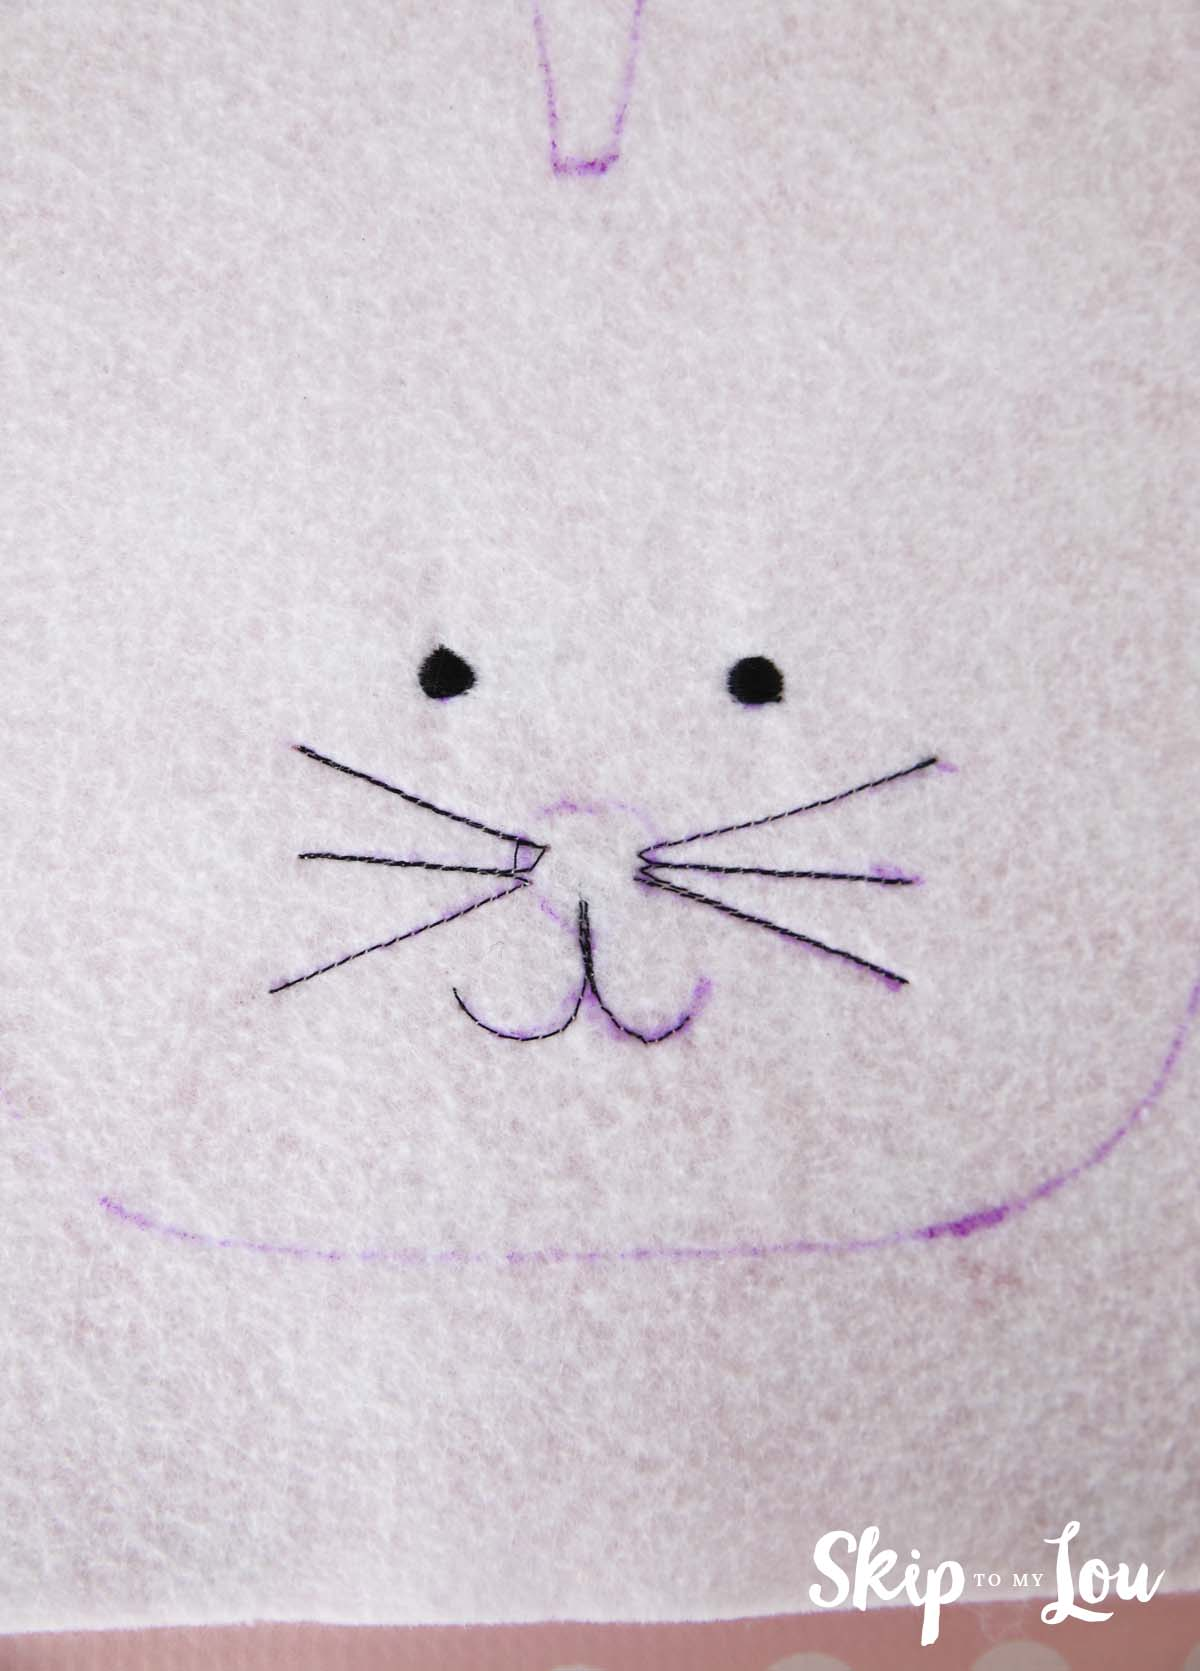 eyes, whiskers, and mouth sewn with black thread onto the white felt following the outline